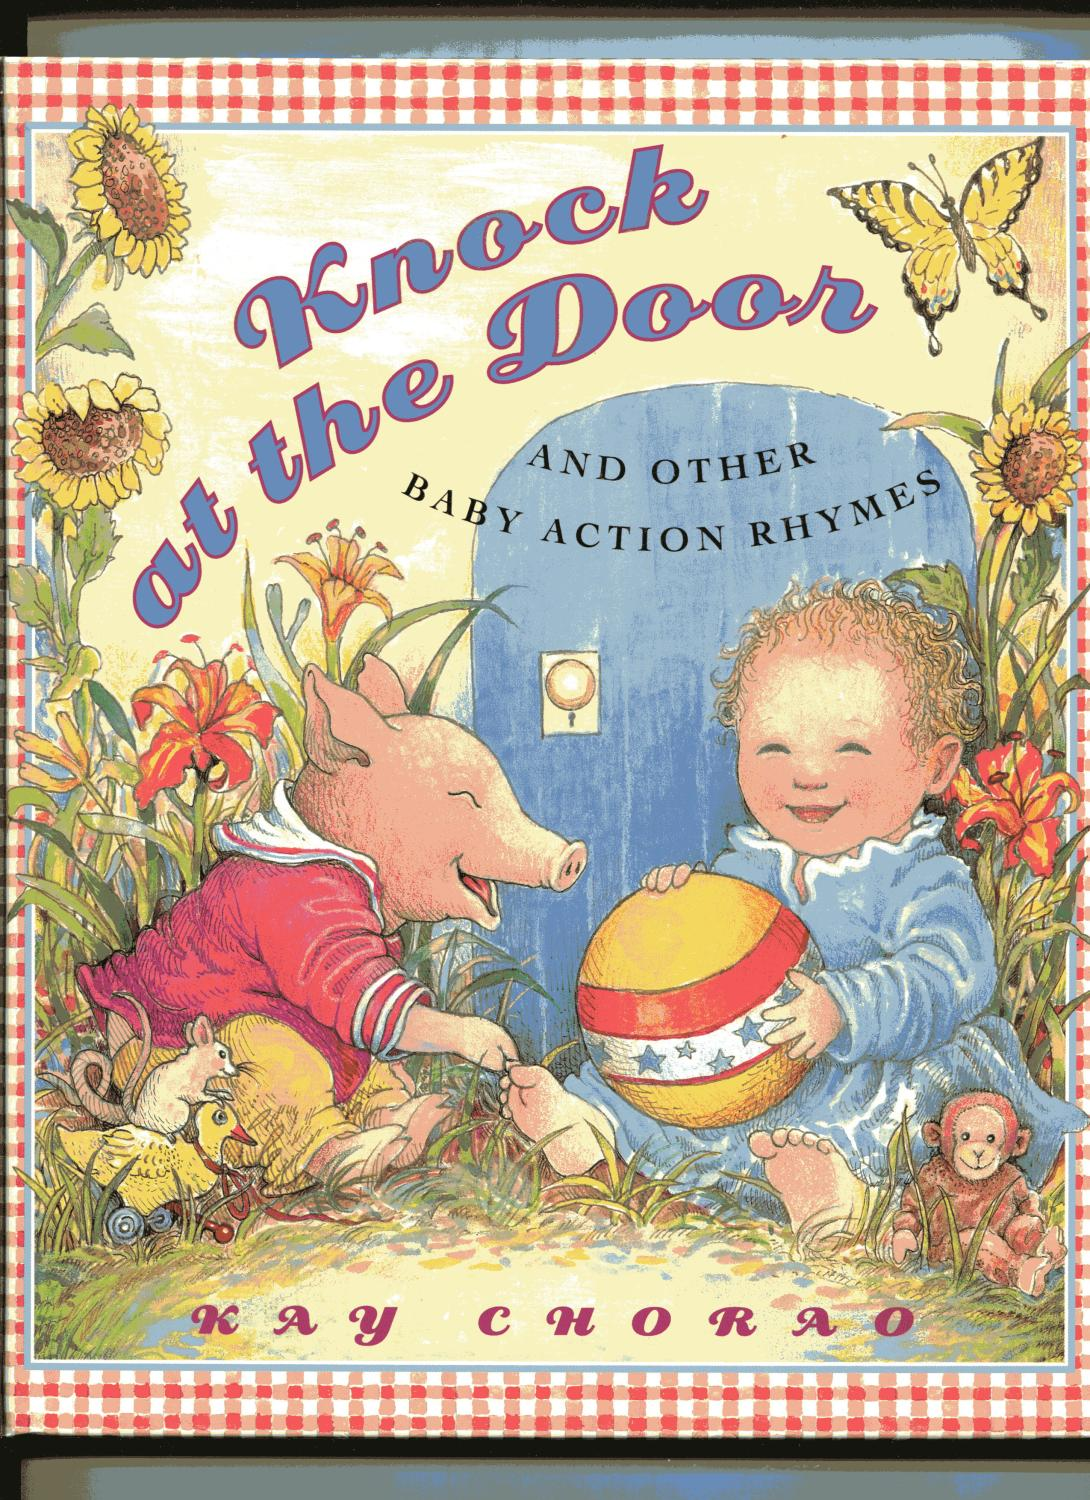 KNOCK AT THE DOOR and Other Baby Action Rhymes Chorao Kay  sc 1 st  AbeBooks & KNOCK AT THE DOOR and Other Baby Action Rhymes by Chorao Kay ... pezcame.com